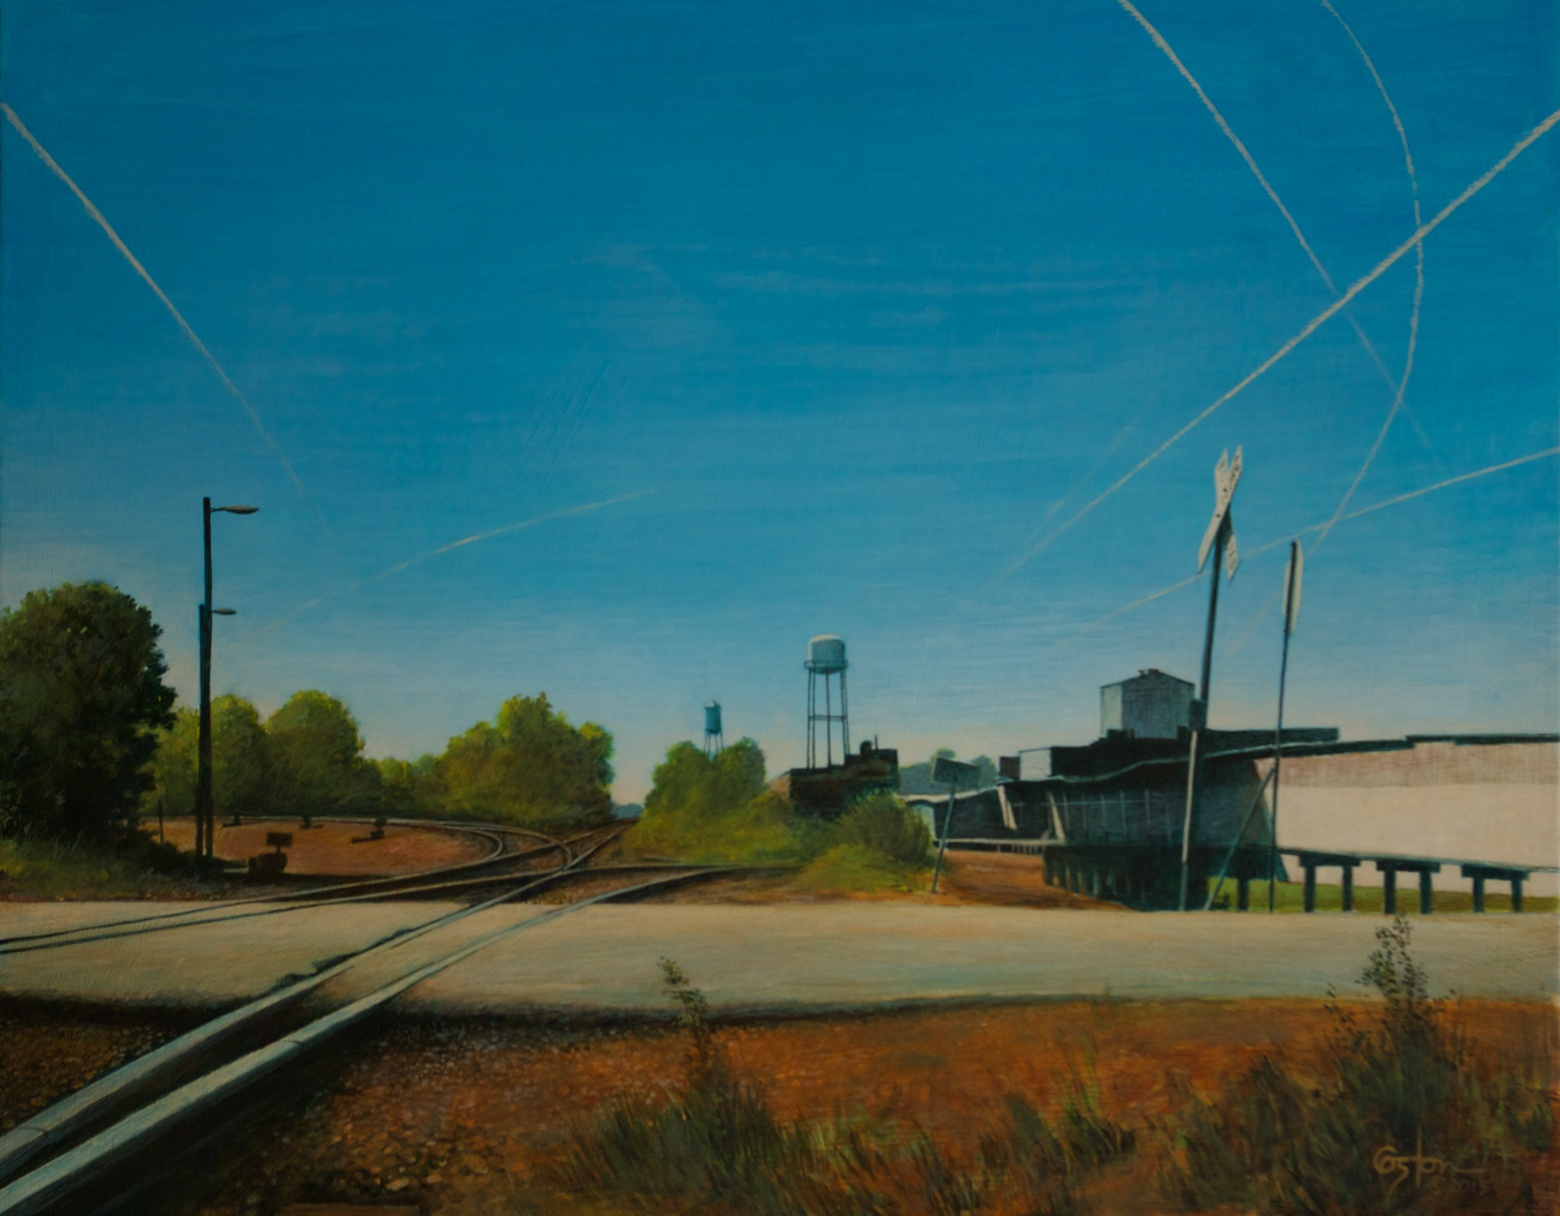 Old Tracks and New, Daniel Coston, 2015